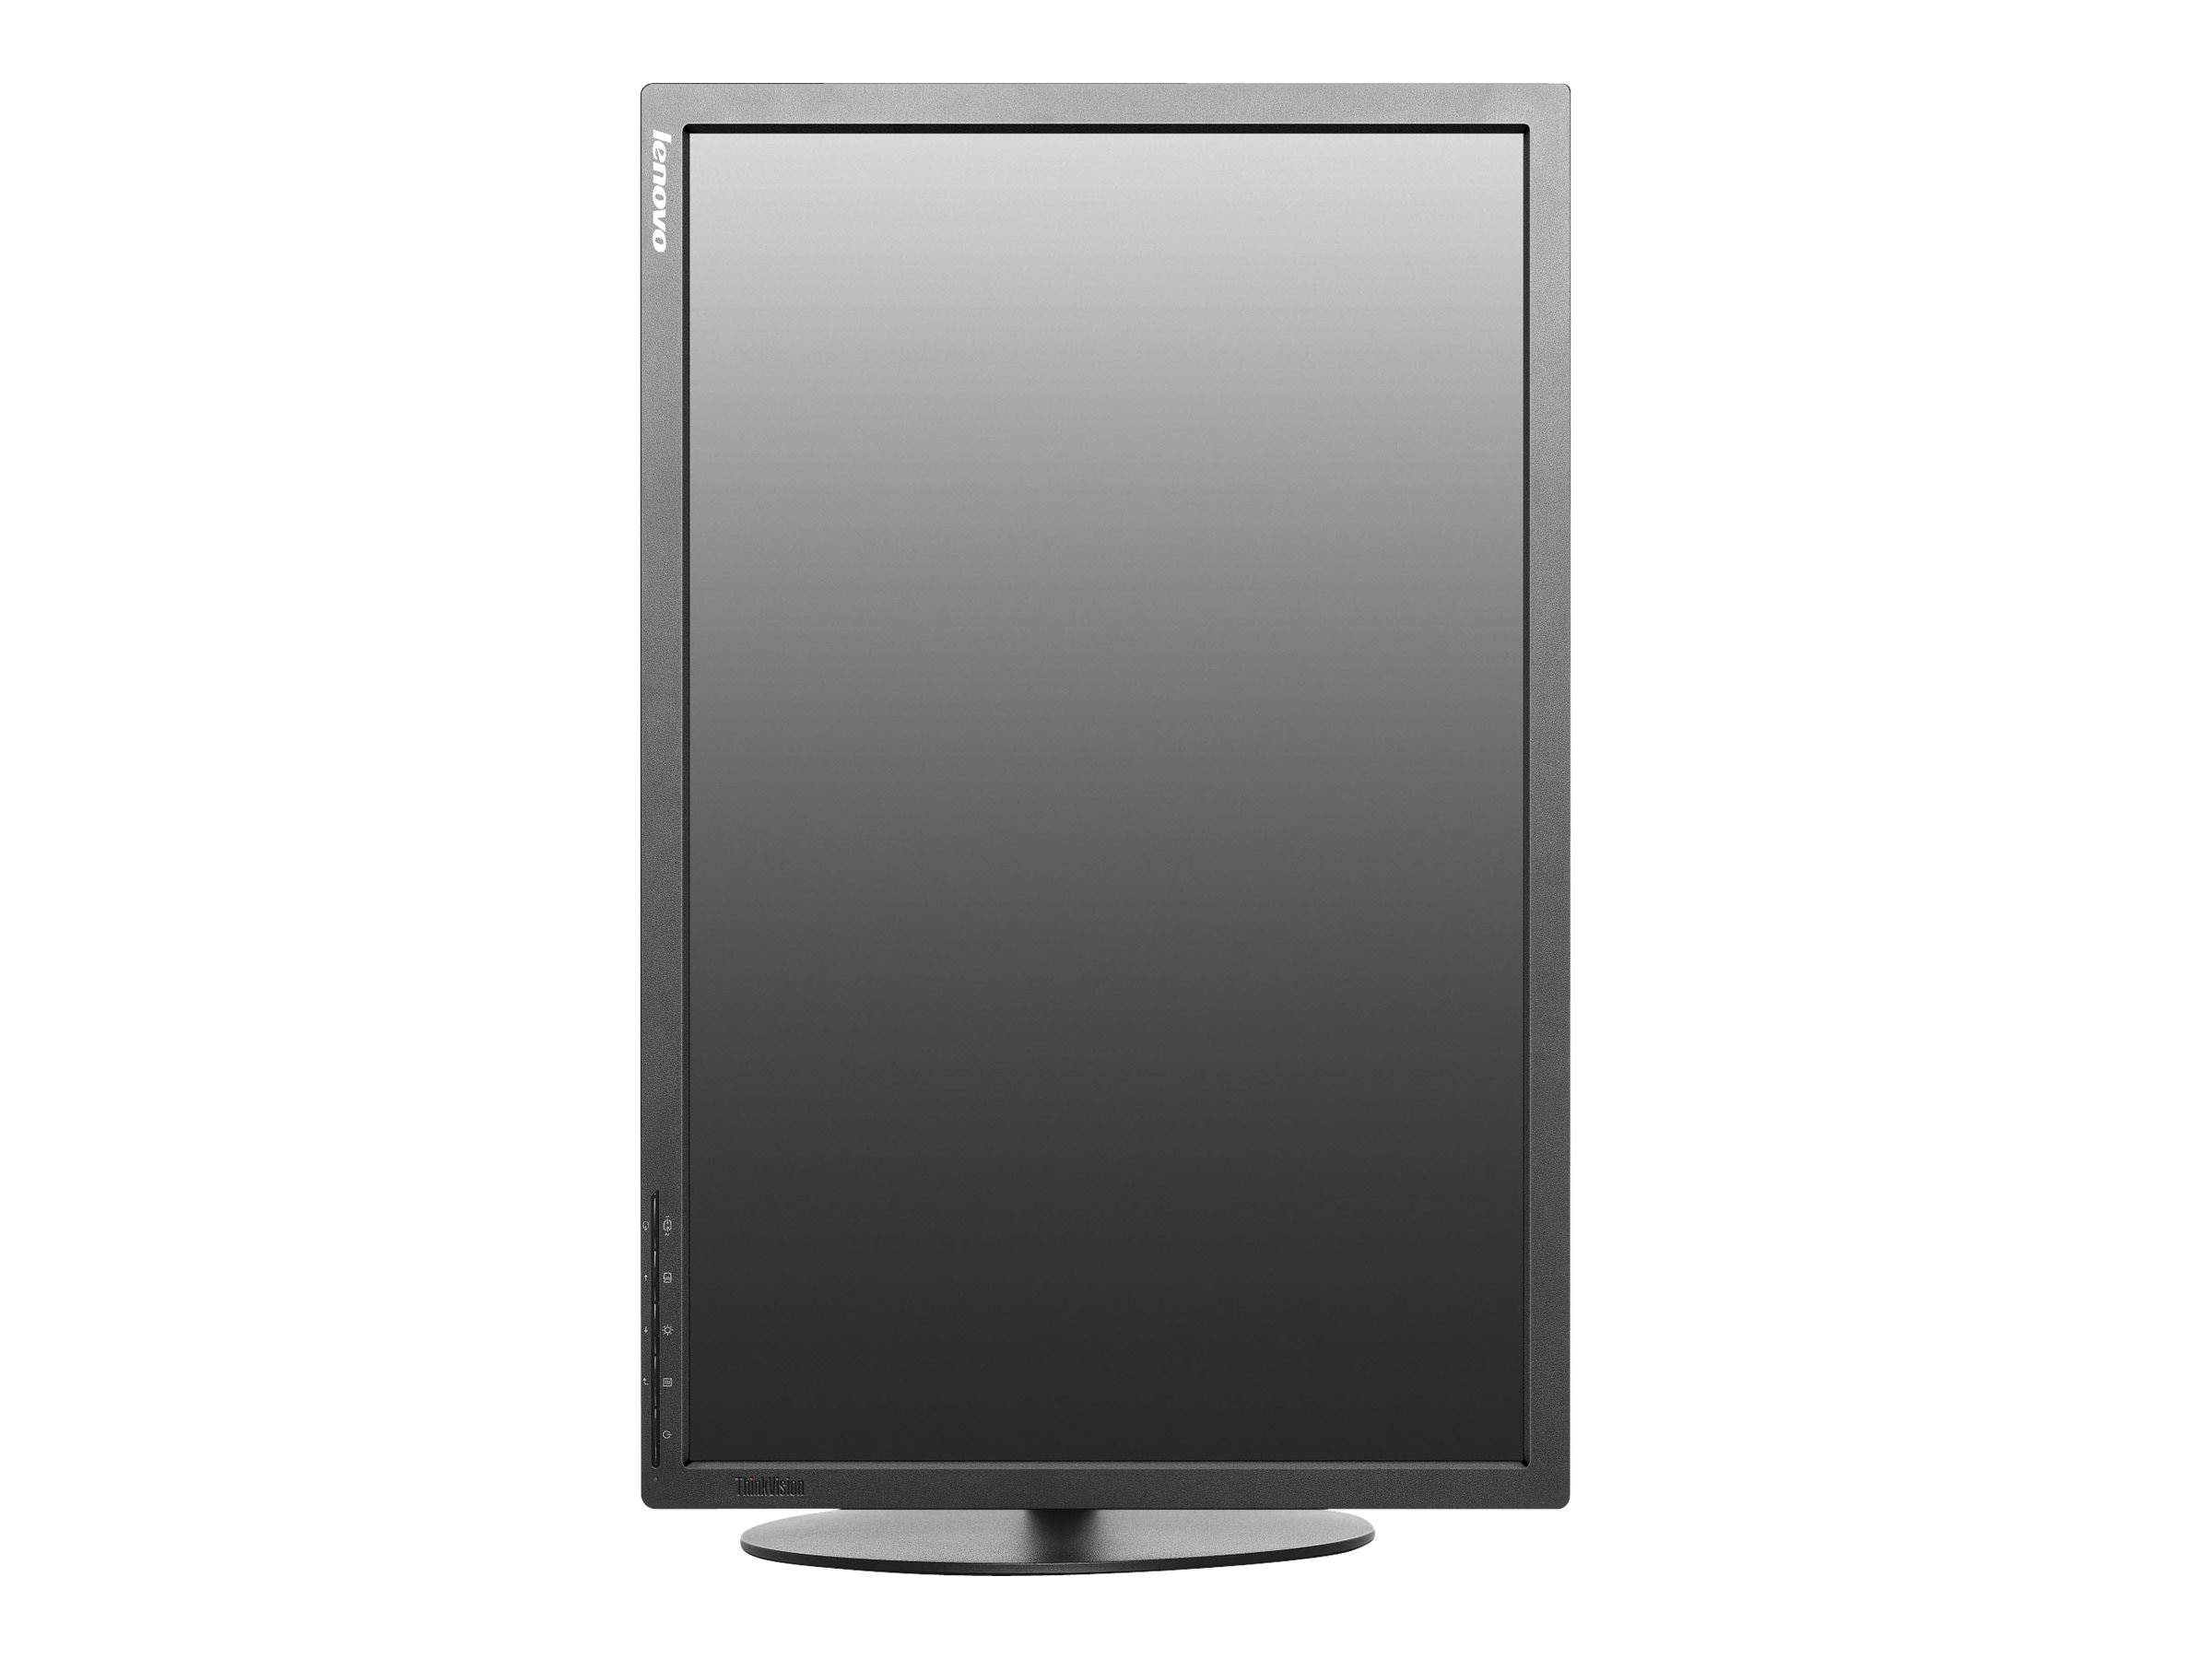 Lenovo 24 ThinkVision T2454p LED-LCD Monitor, Black, 60F9MAR1US